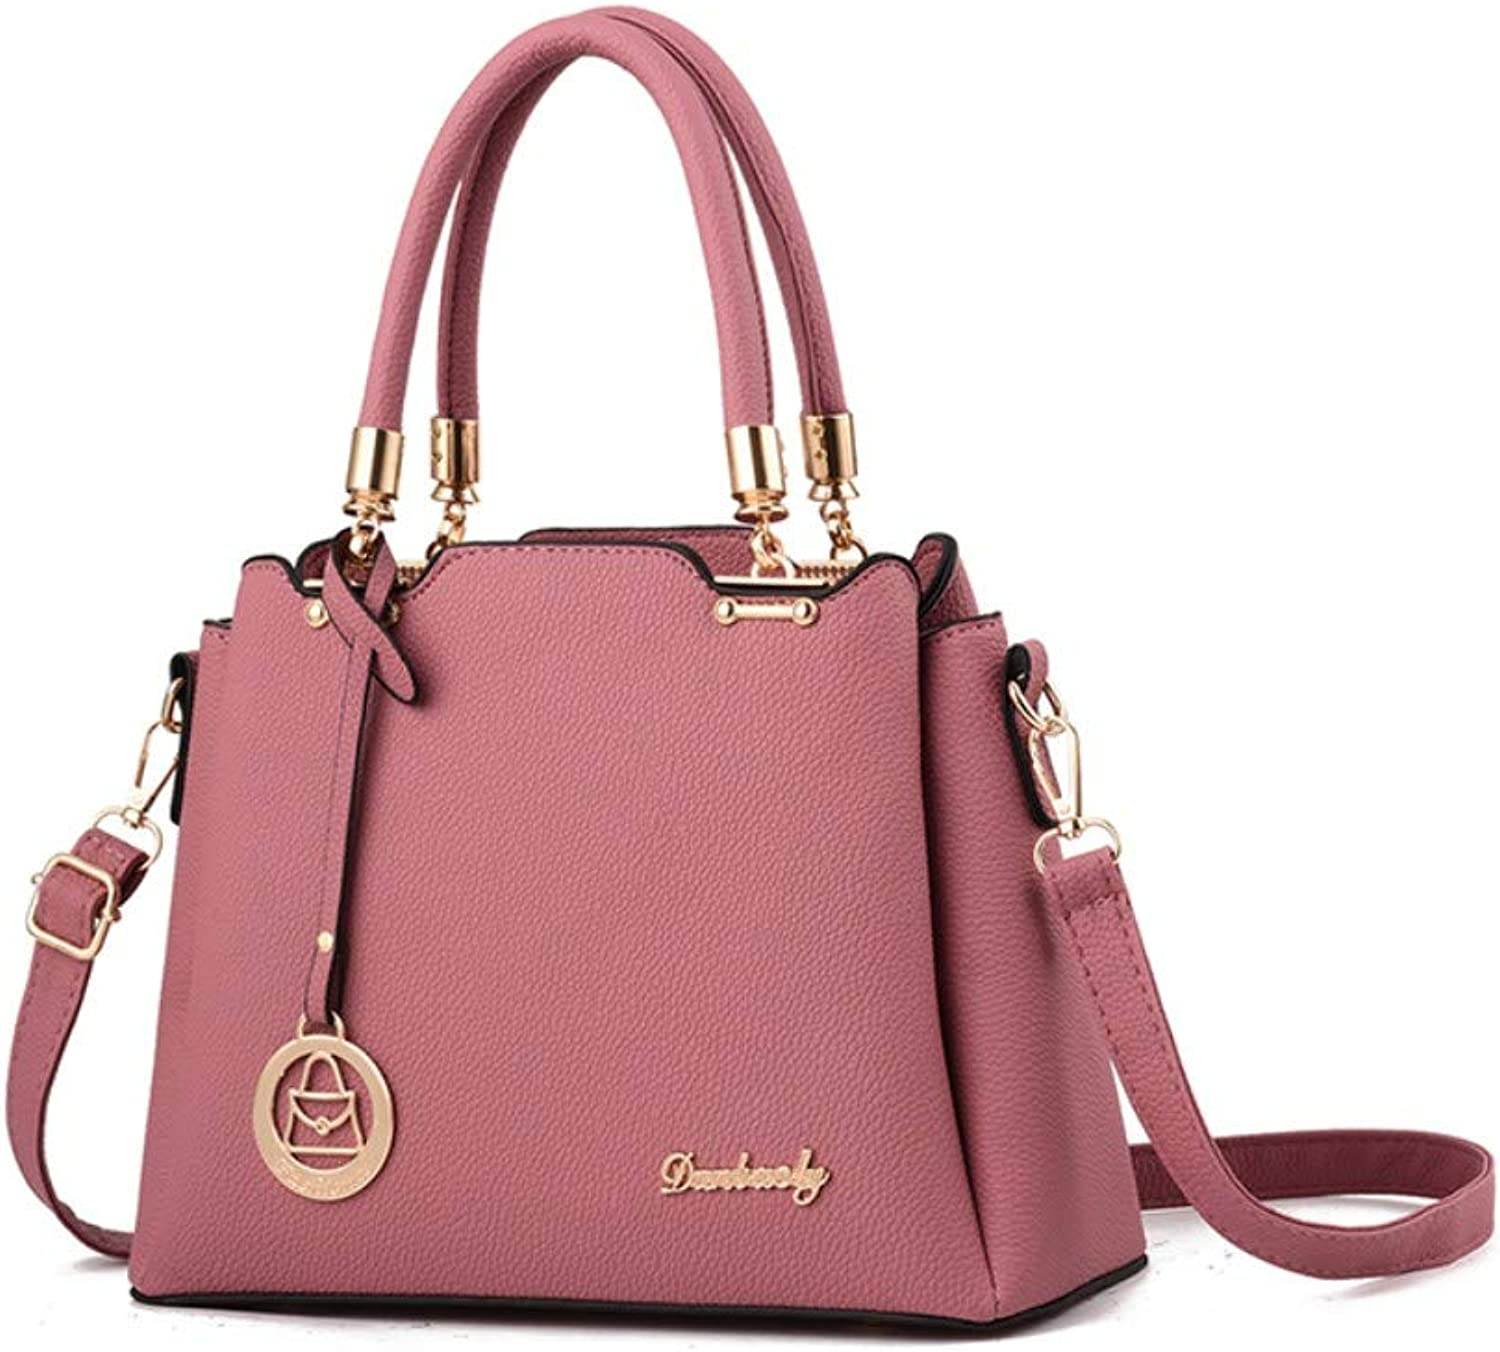 Z.H-H Wild Fashion, Small Fresh Lady Casual, Simple and Large-Capacity Personality Handbag Middle-Aged Mother's Hand Bag Shoulder Bag